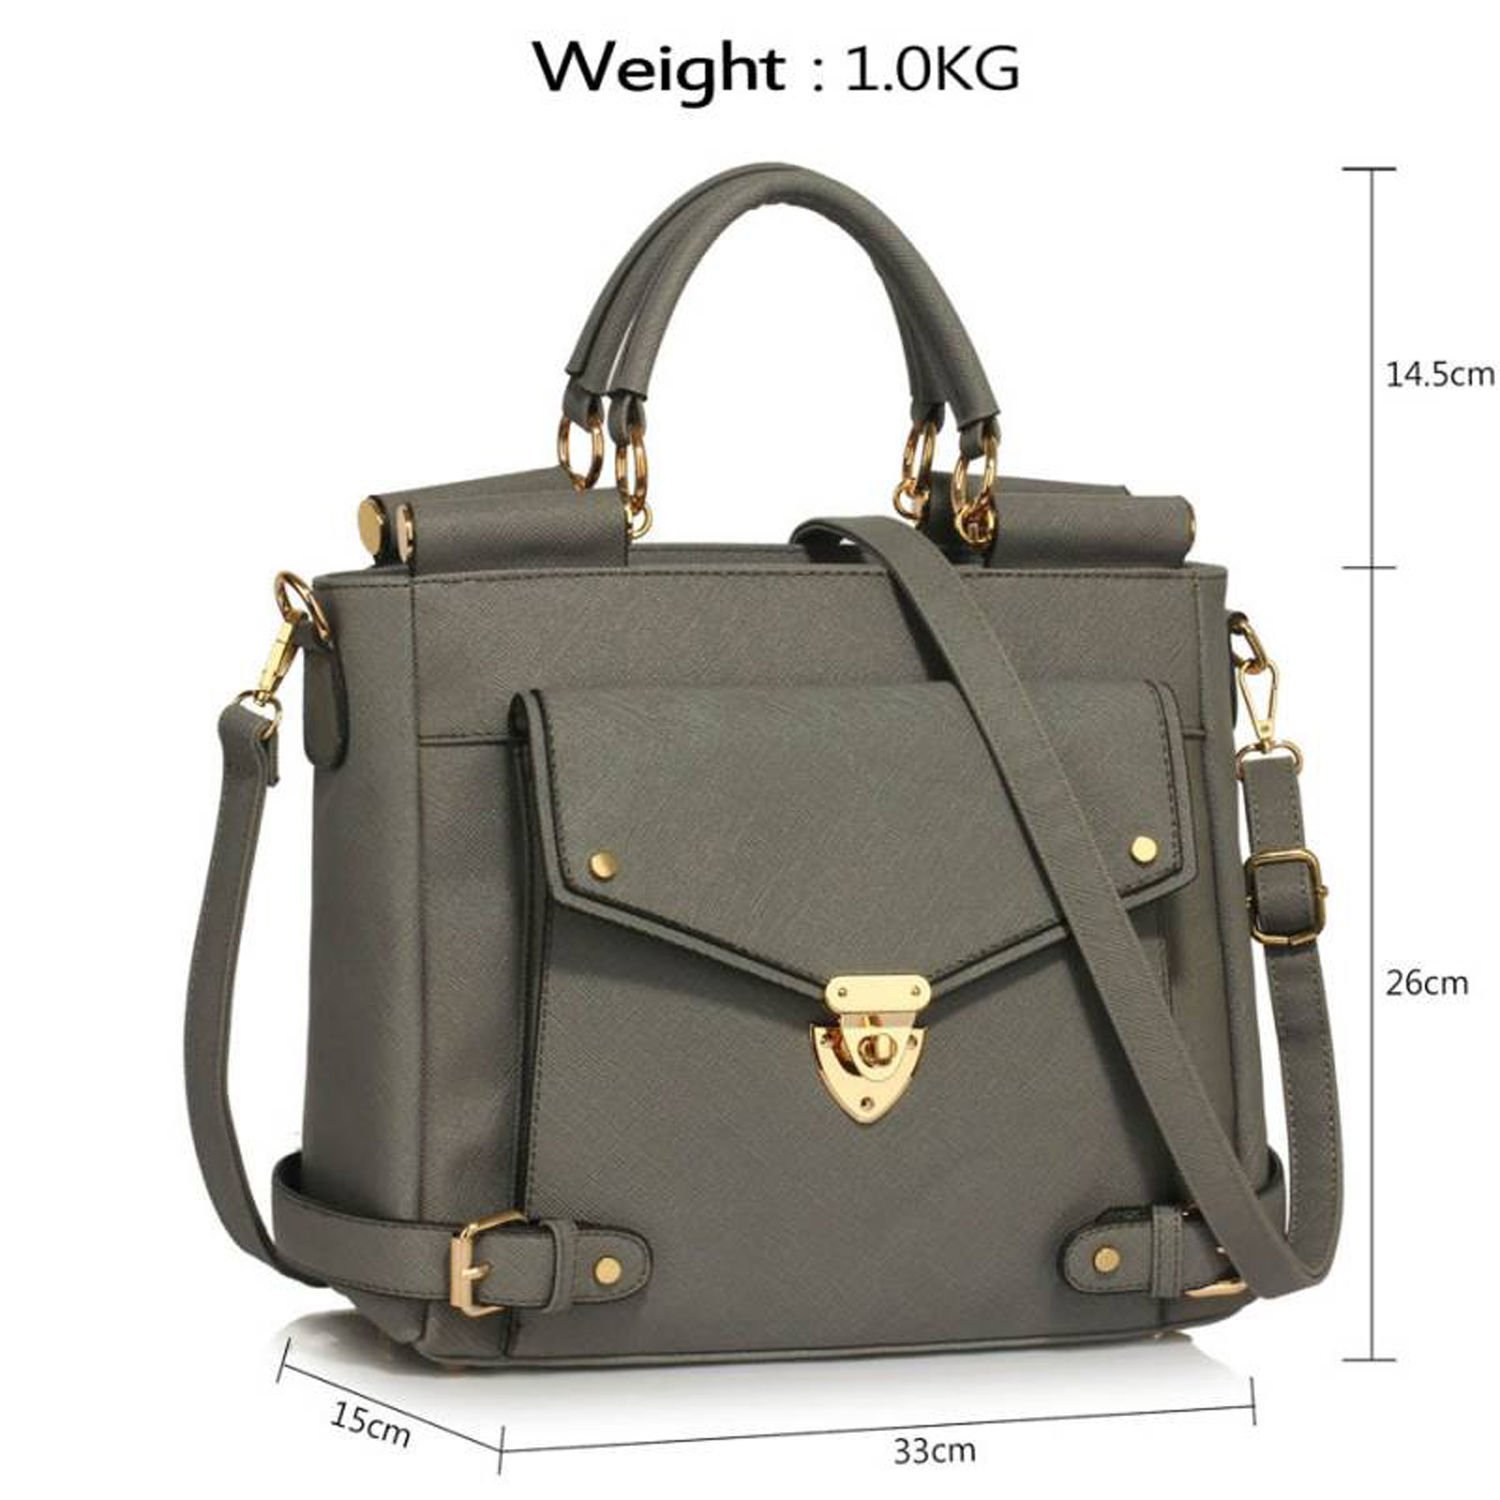 e848cd7241 Xardi London Grey Large Shoulder Bags For Women Designer Handbags Ladies  Faux Leather Tote Girl College Cross Body Satchel Bags with Long Strap  ...